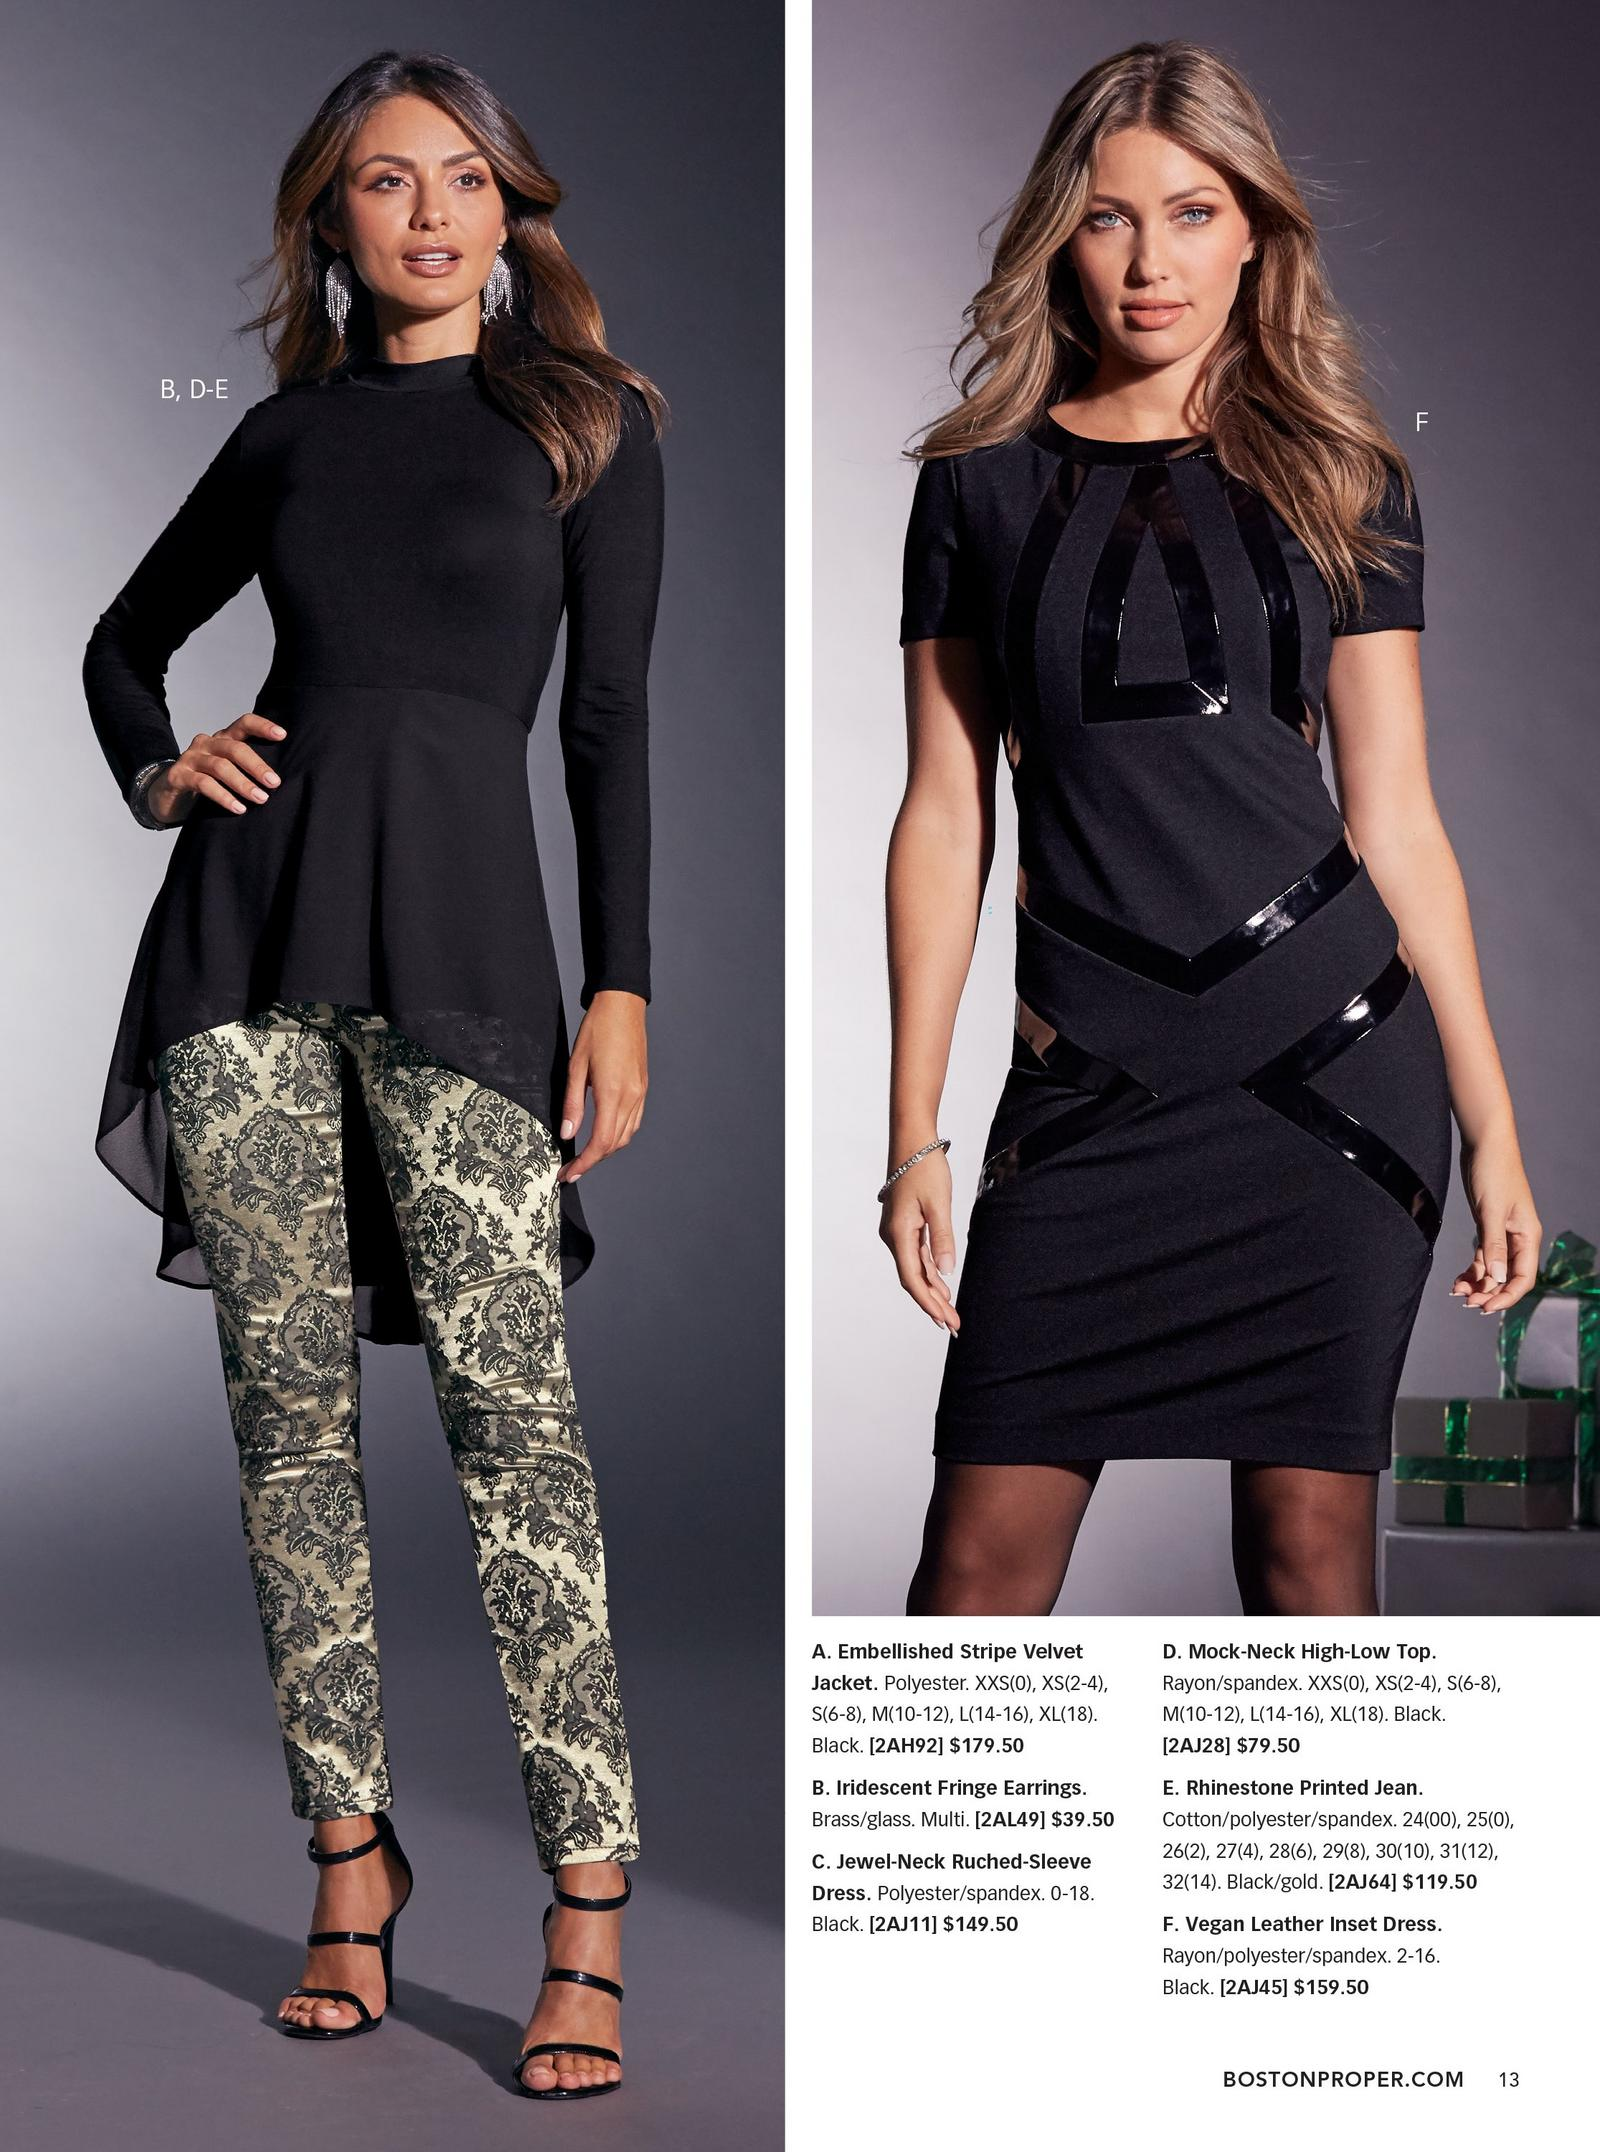 left: mock-neck high-low top in black over black and gold rhinestone printed jeans. right: black vegan leather inset dress.